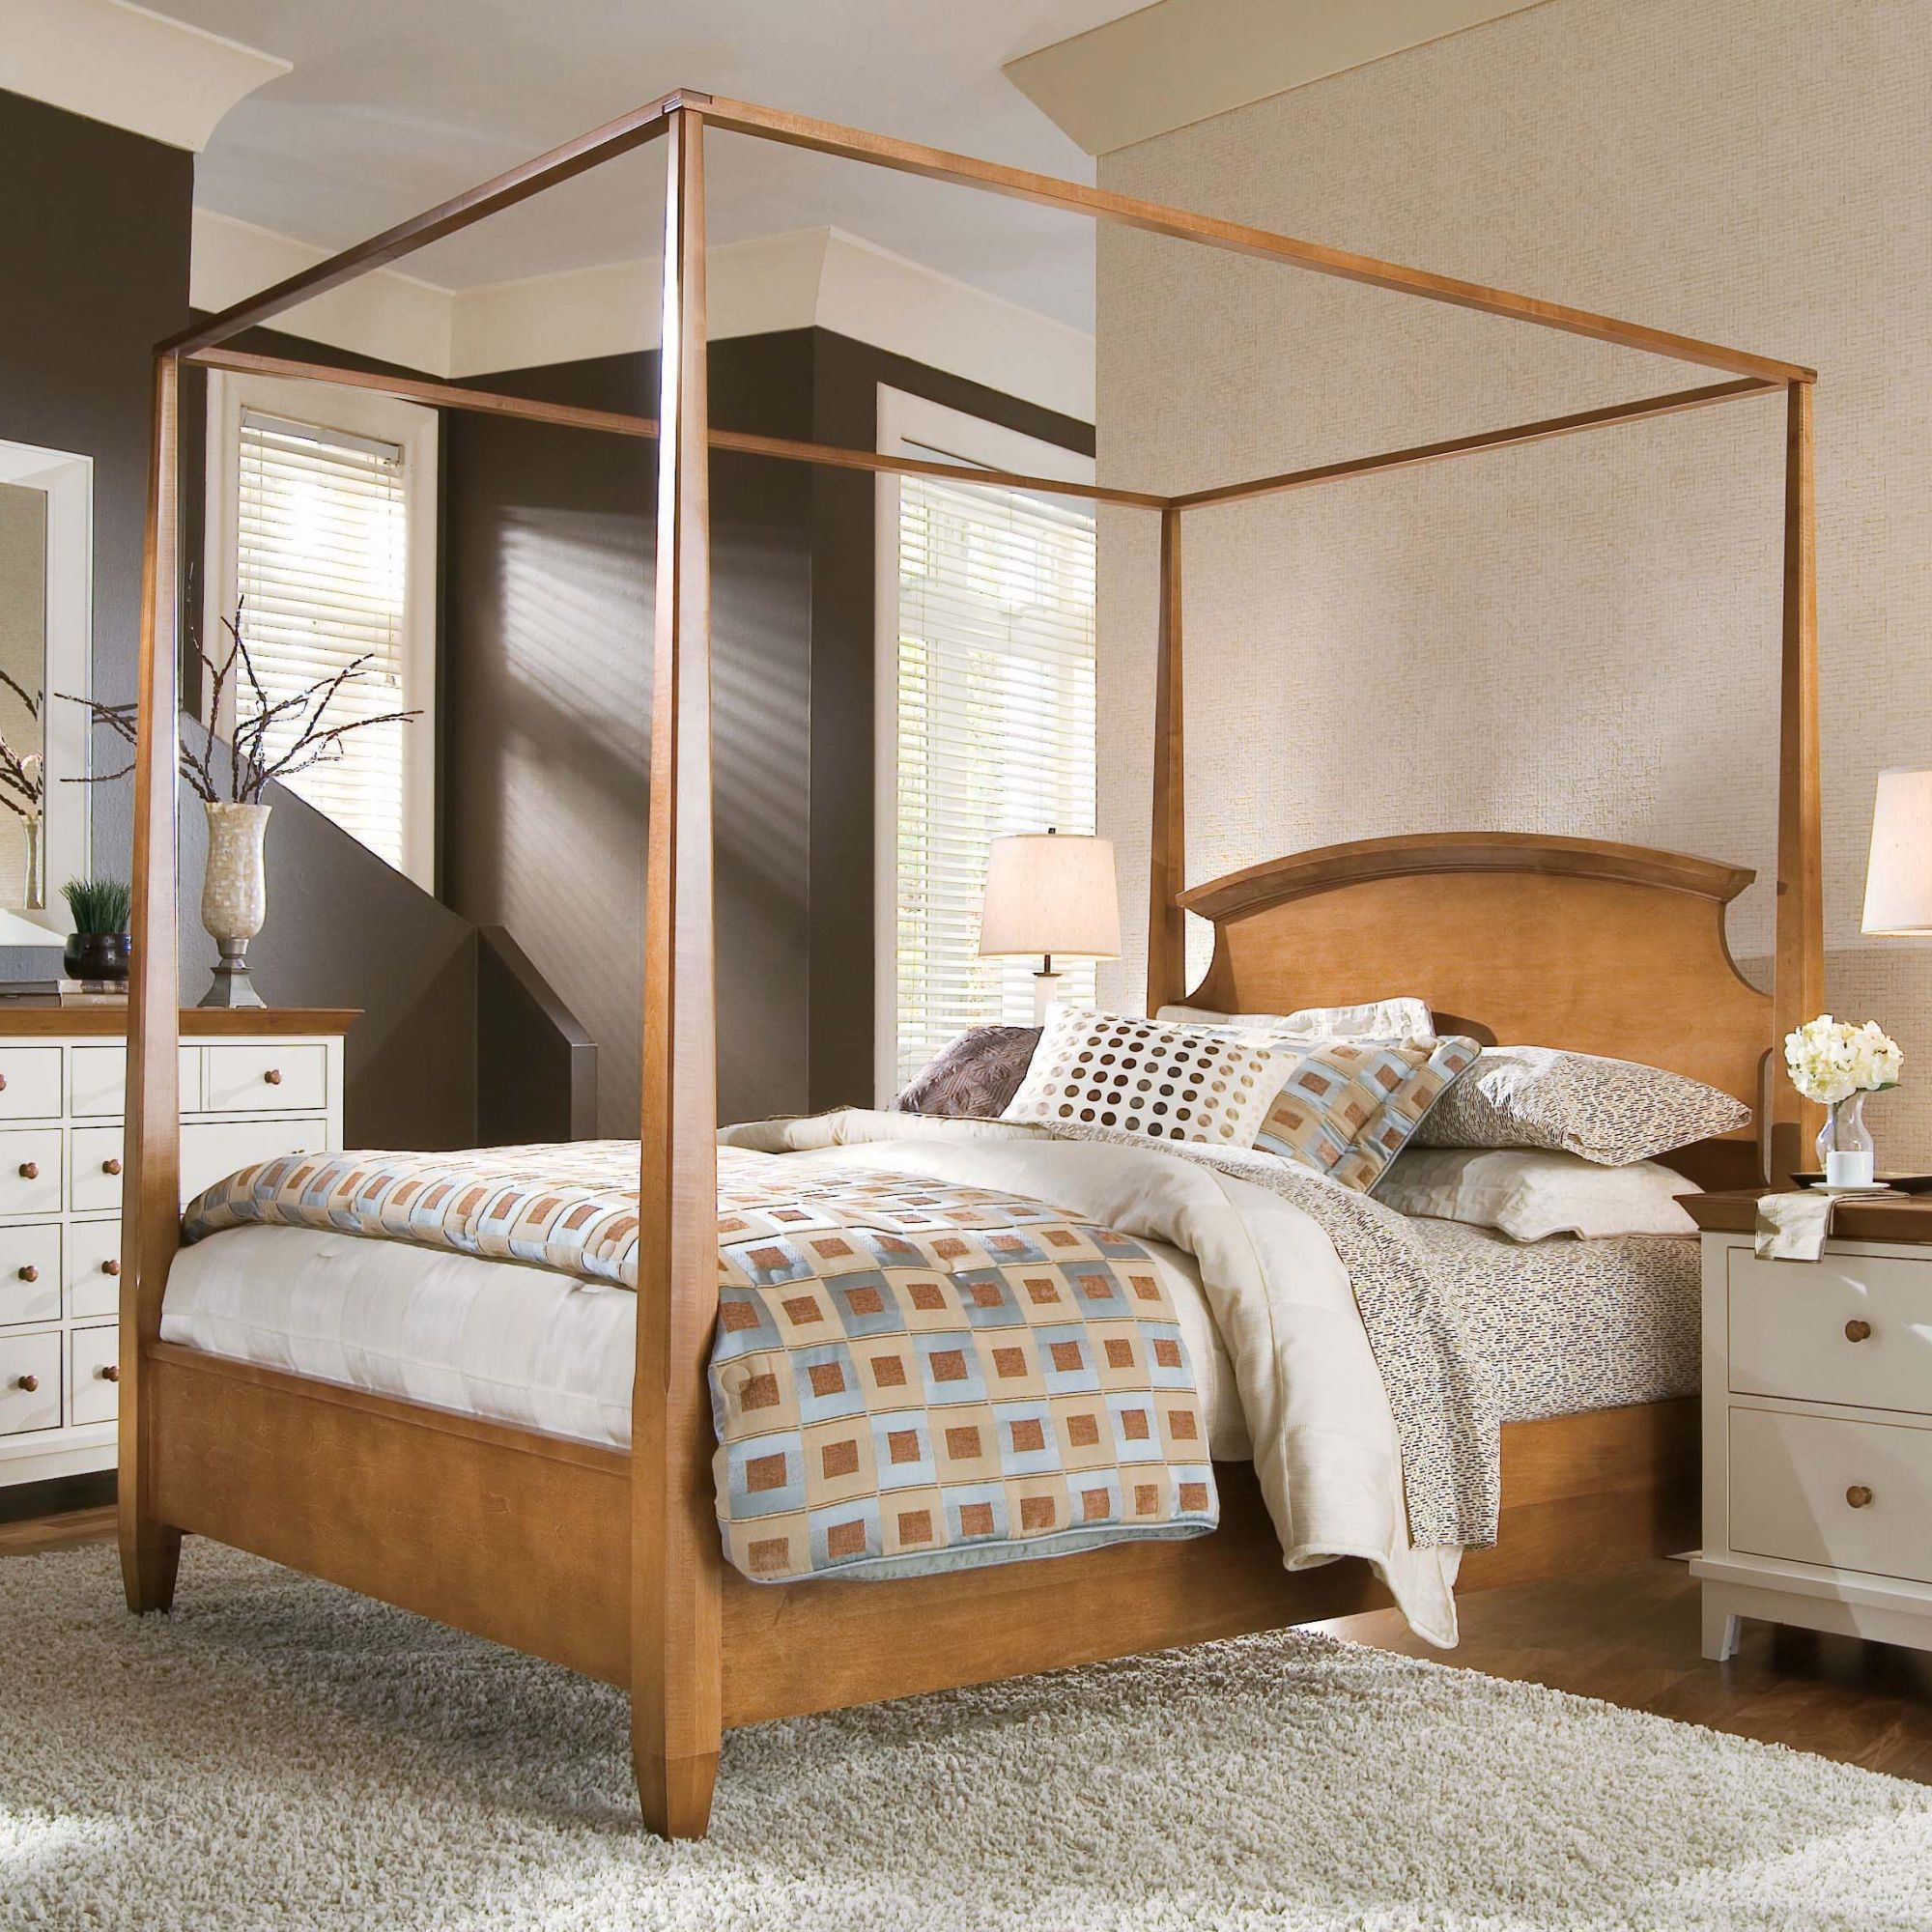 This bed is classic and timeless; you could dress it up or